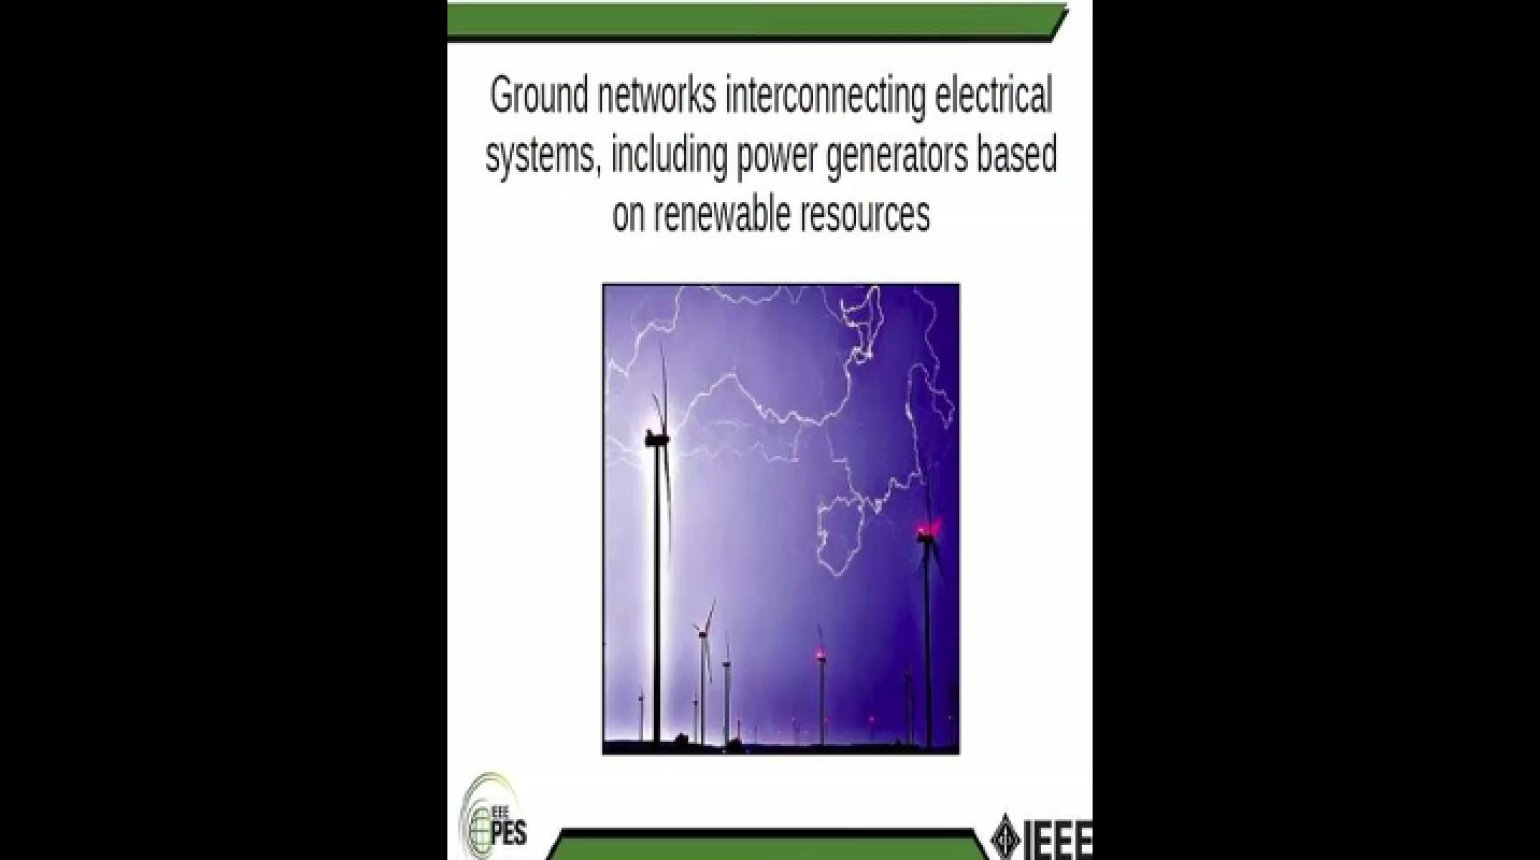 Analysis of Ground Networks Interconnected Electrical Systems Including Power Generators Using Renewable Resources